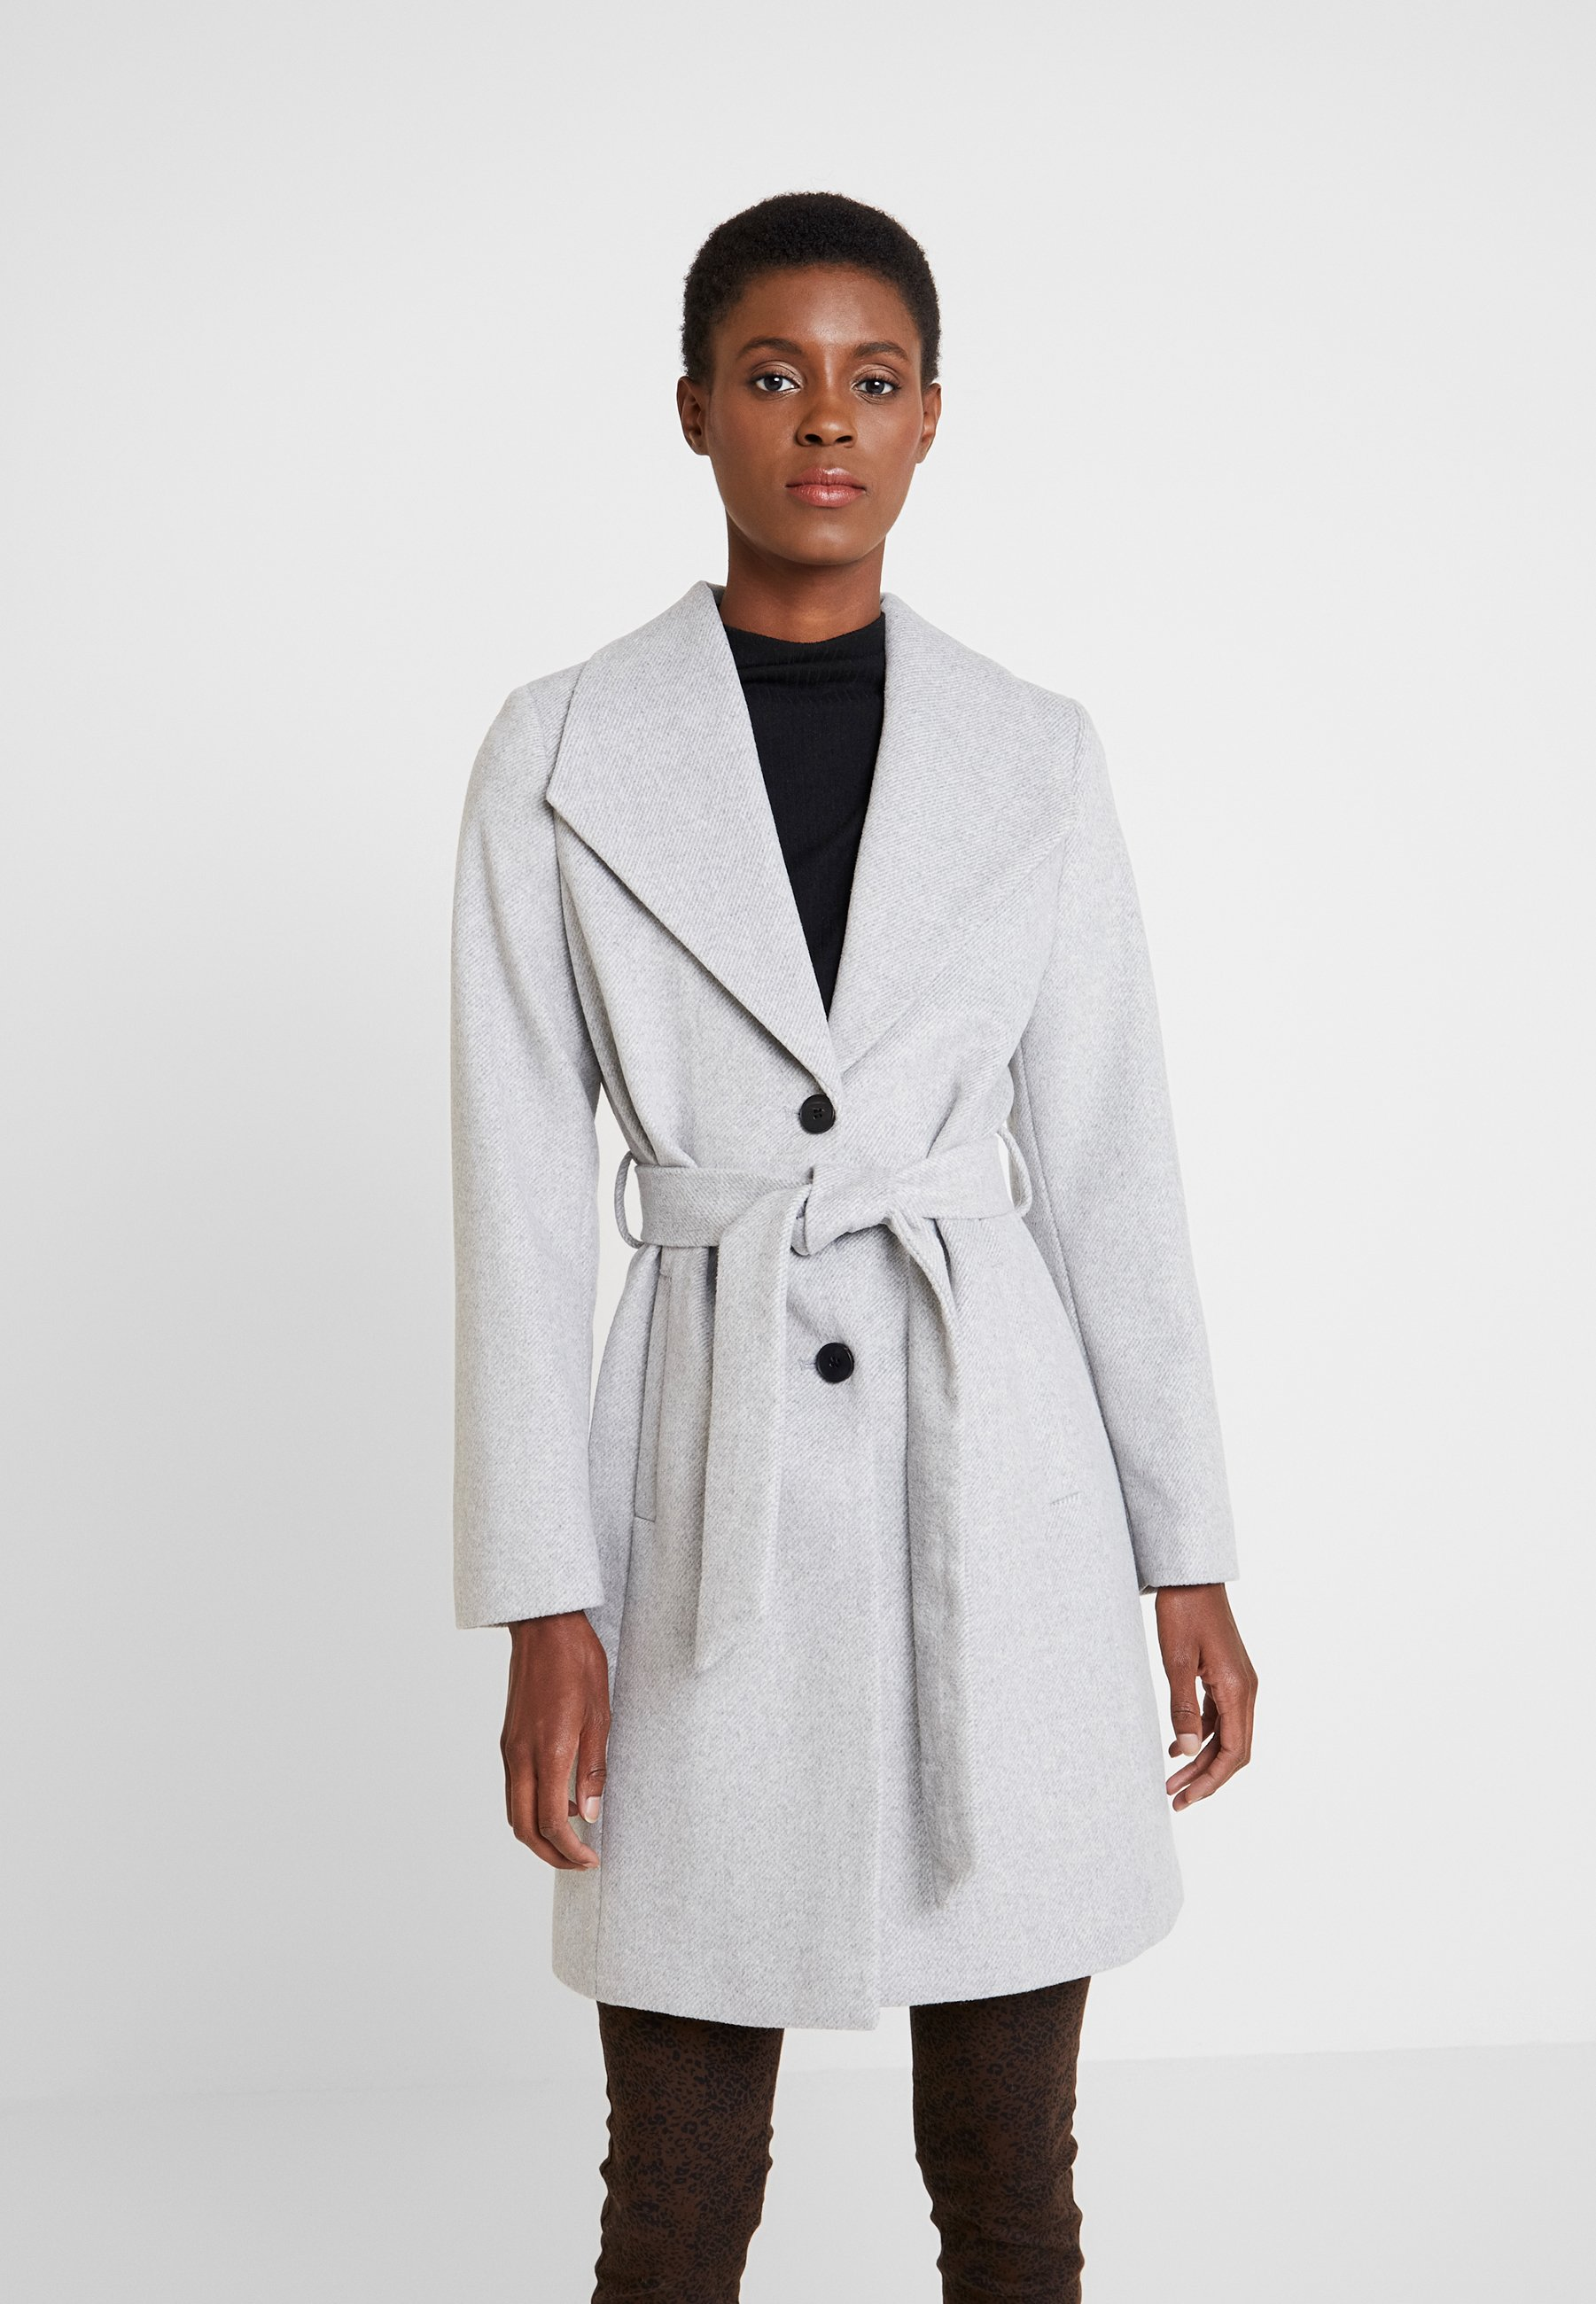 CoatManteau Classique Collection Esprit Grey Light 5 UVpqGSzM